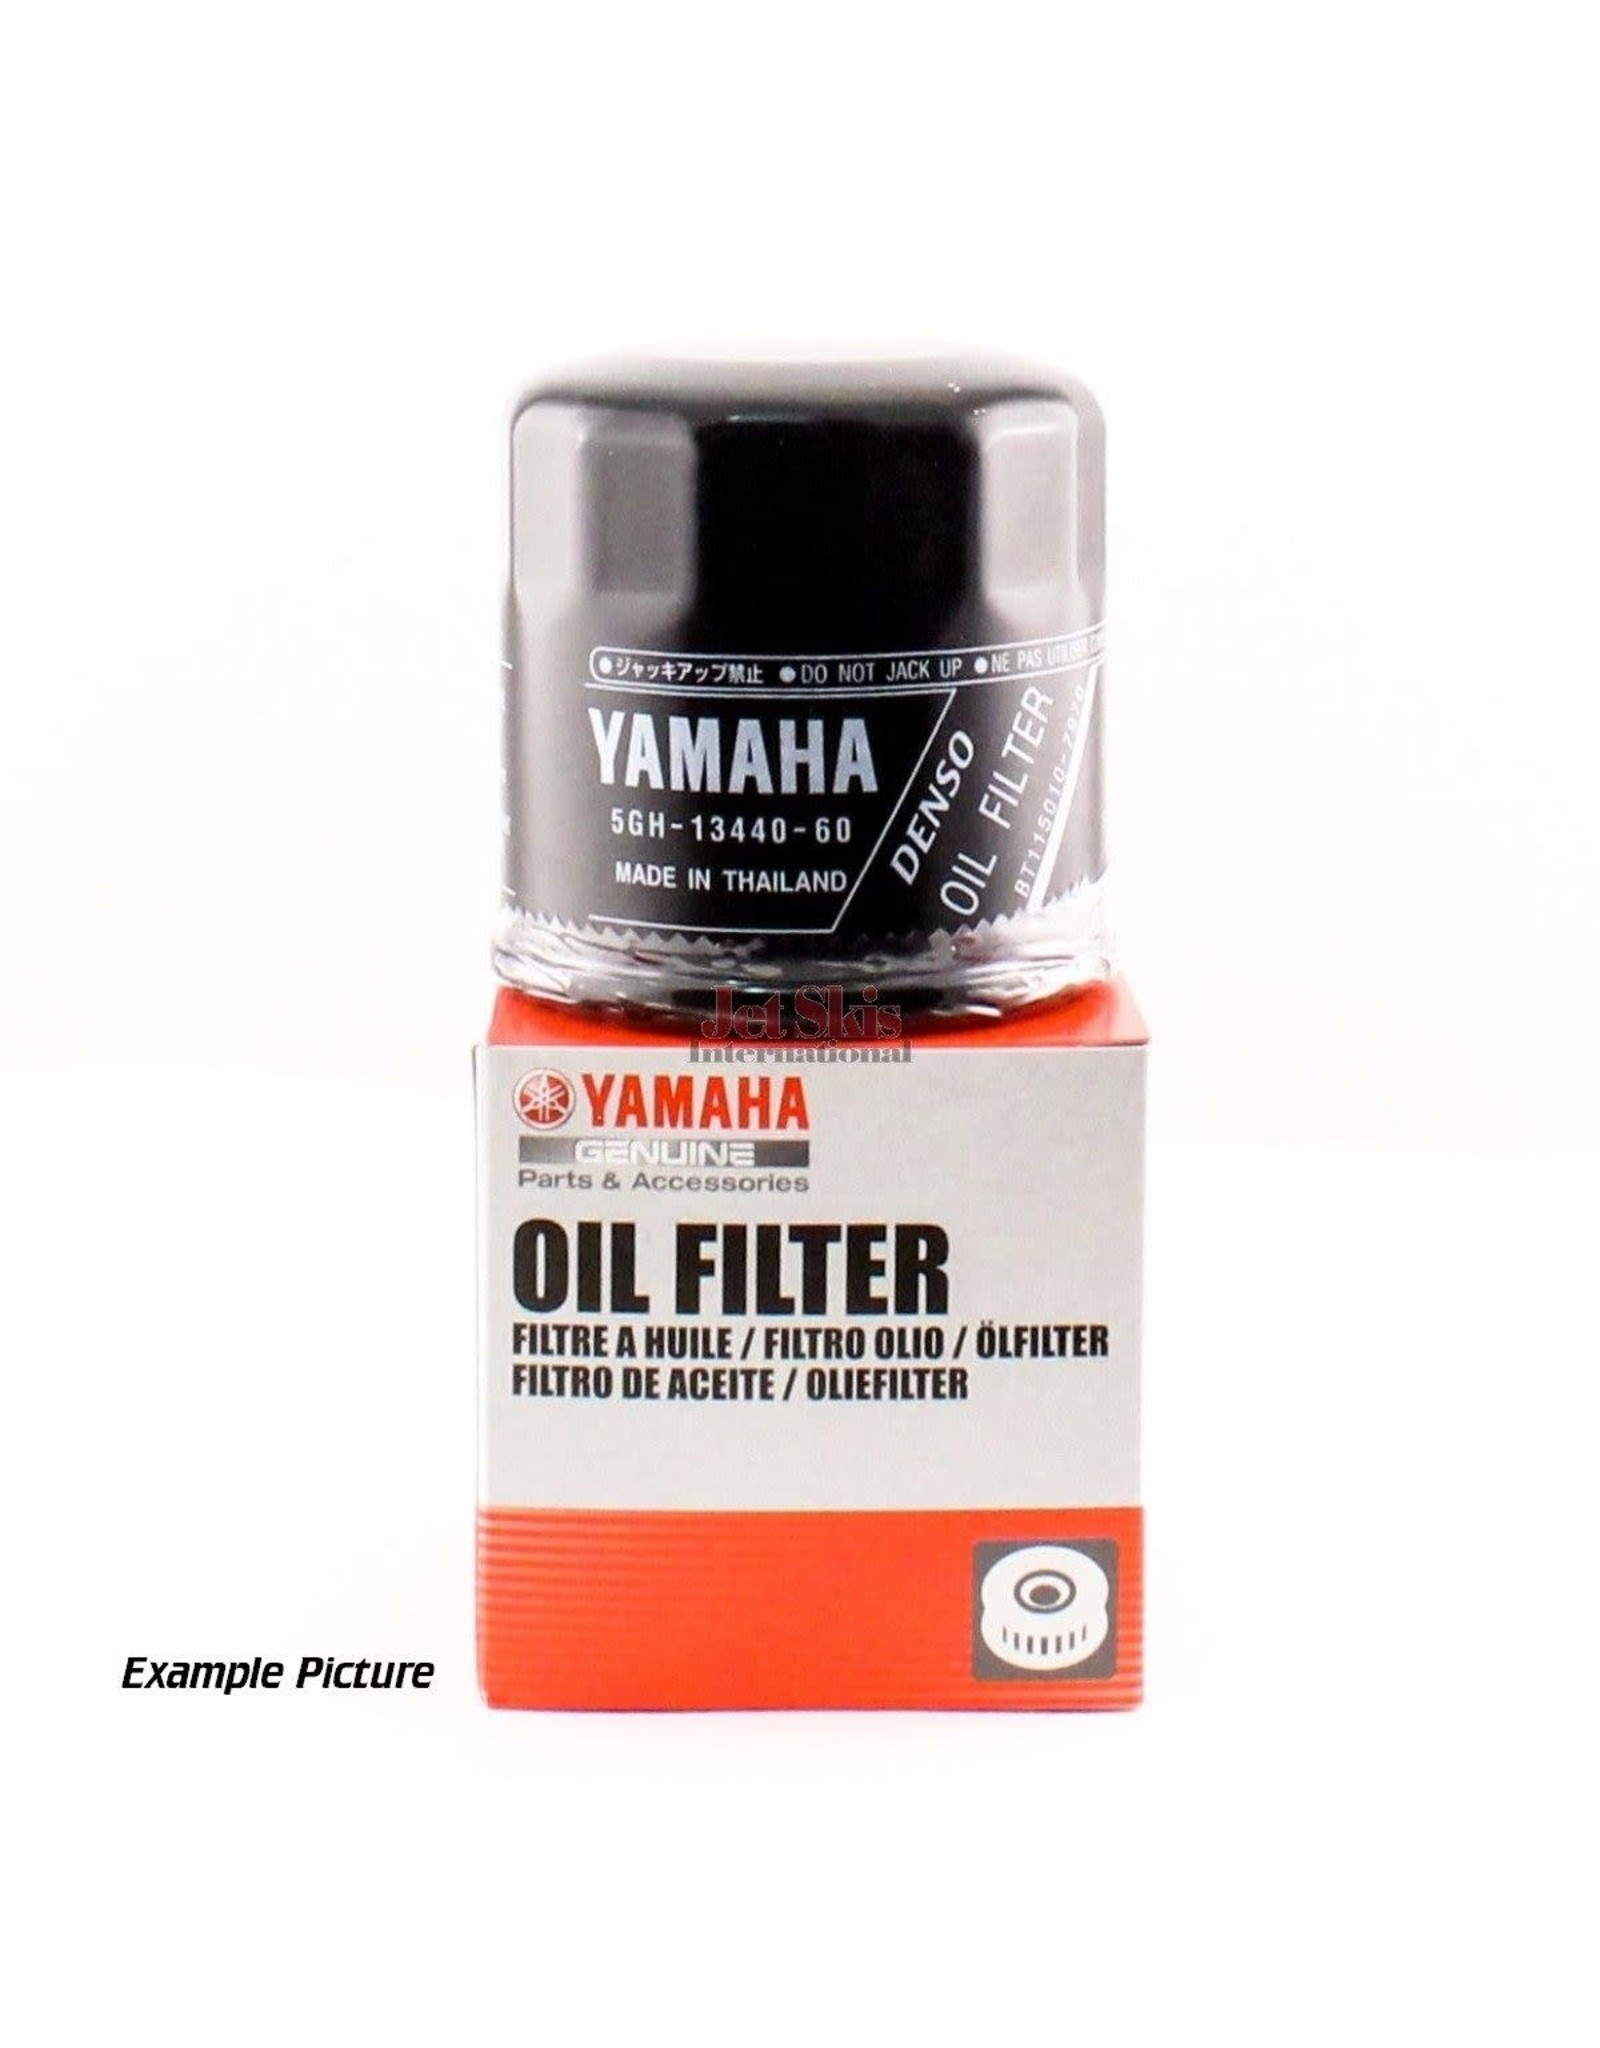 Yamaha OIL FILTER, YAMAHA, 4X7-13440-90-00